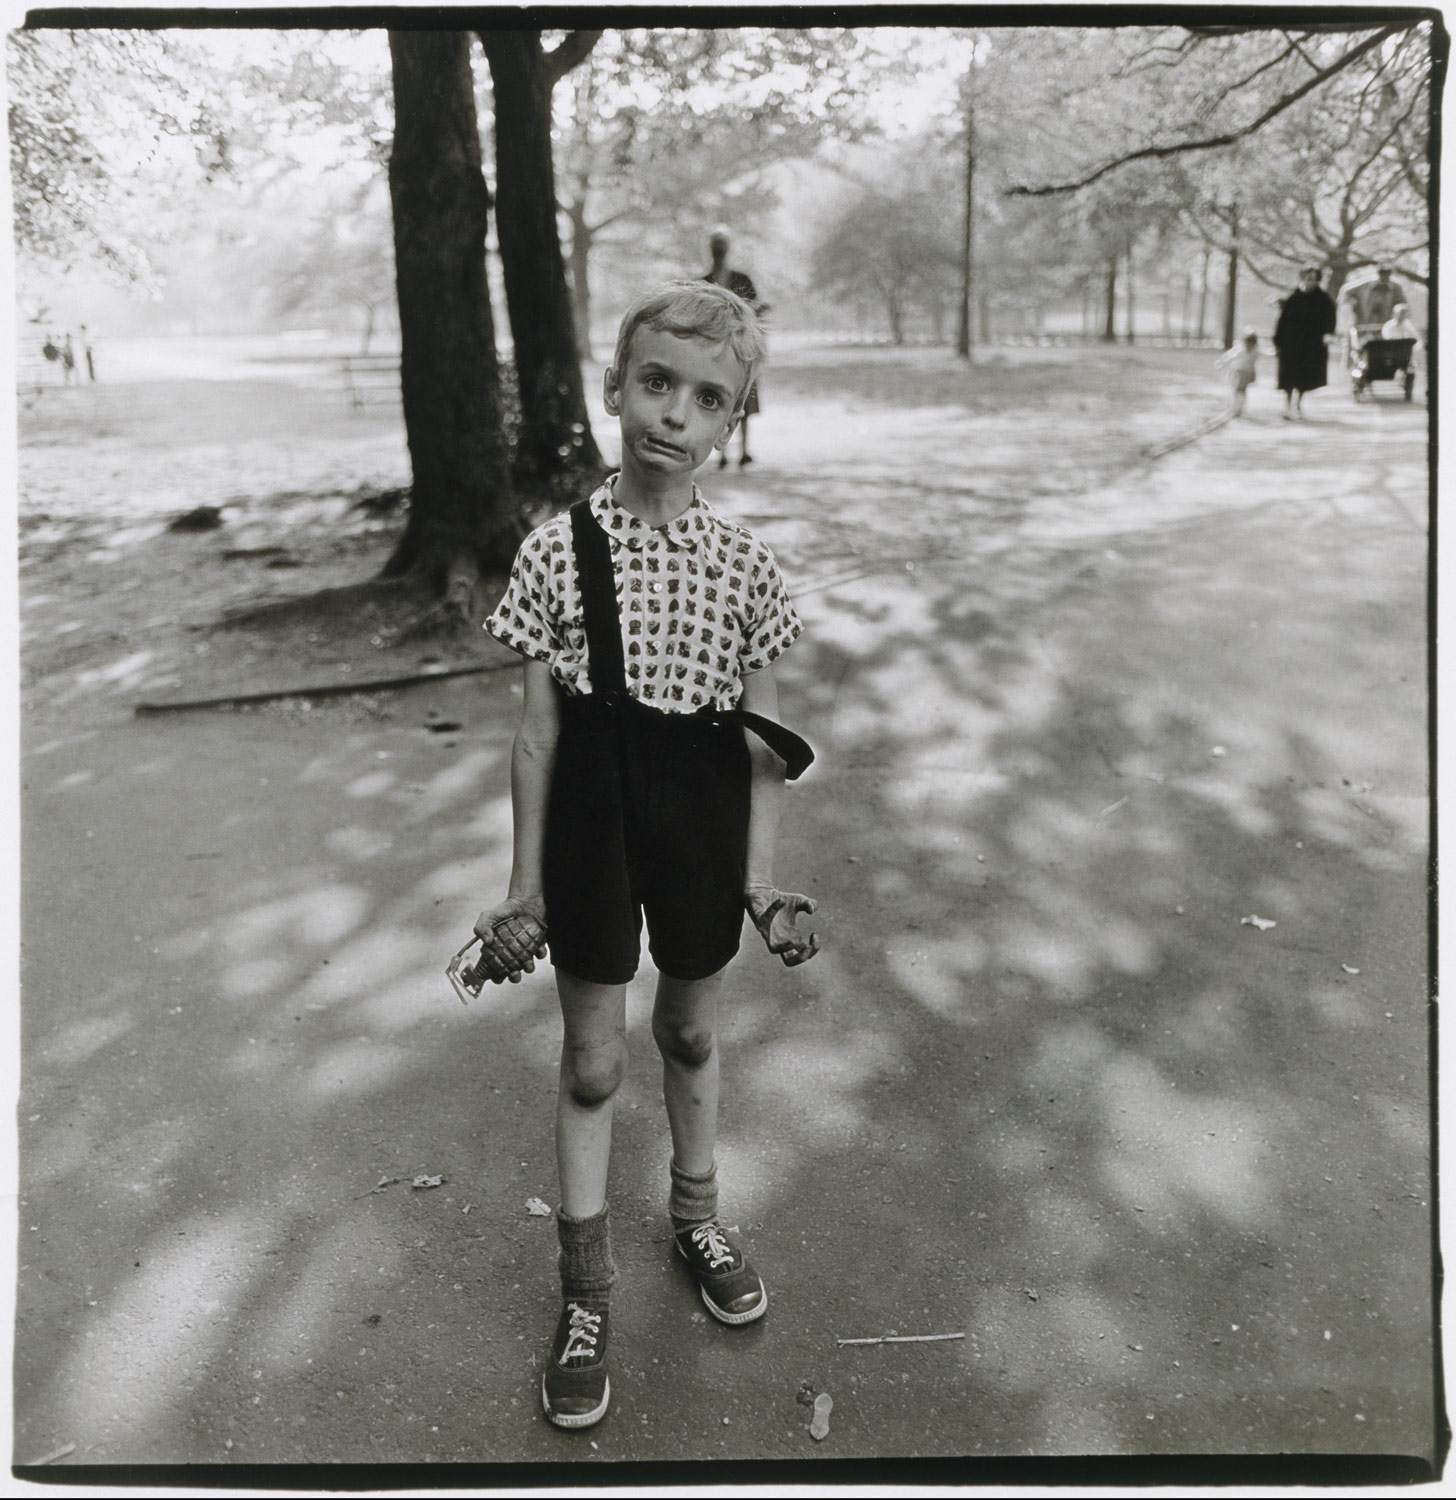 Diane Arbus.  Child with a toy hand grenade in Central Park, N.Y.C.  1962. Copyright © 1970 The Estate of Diane Arbus